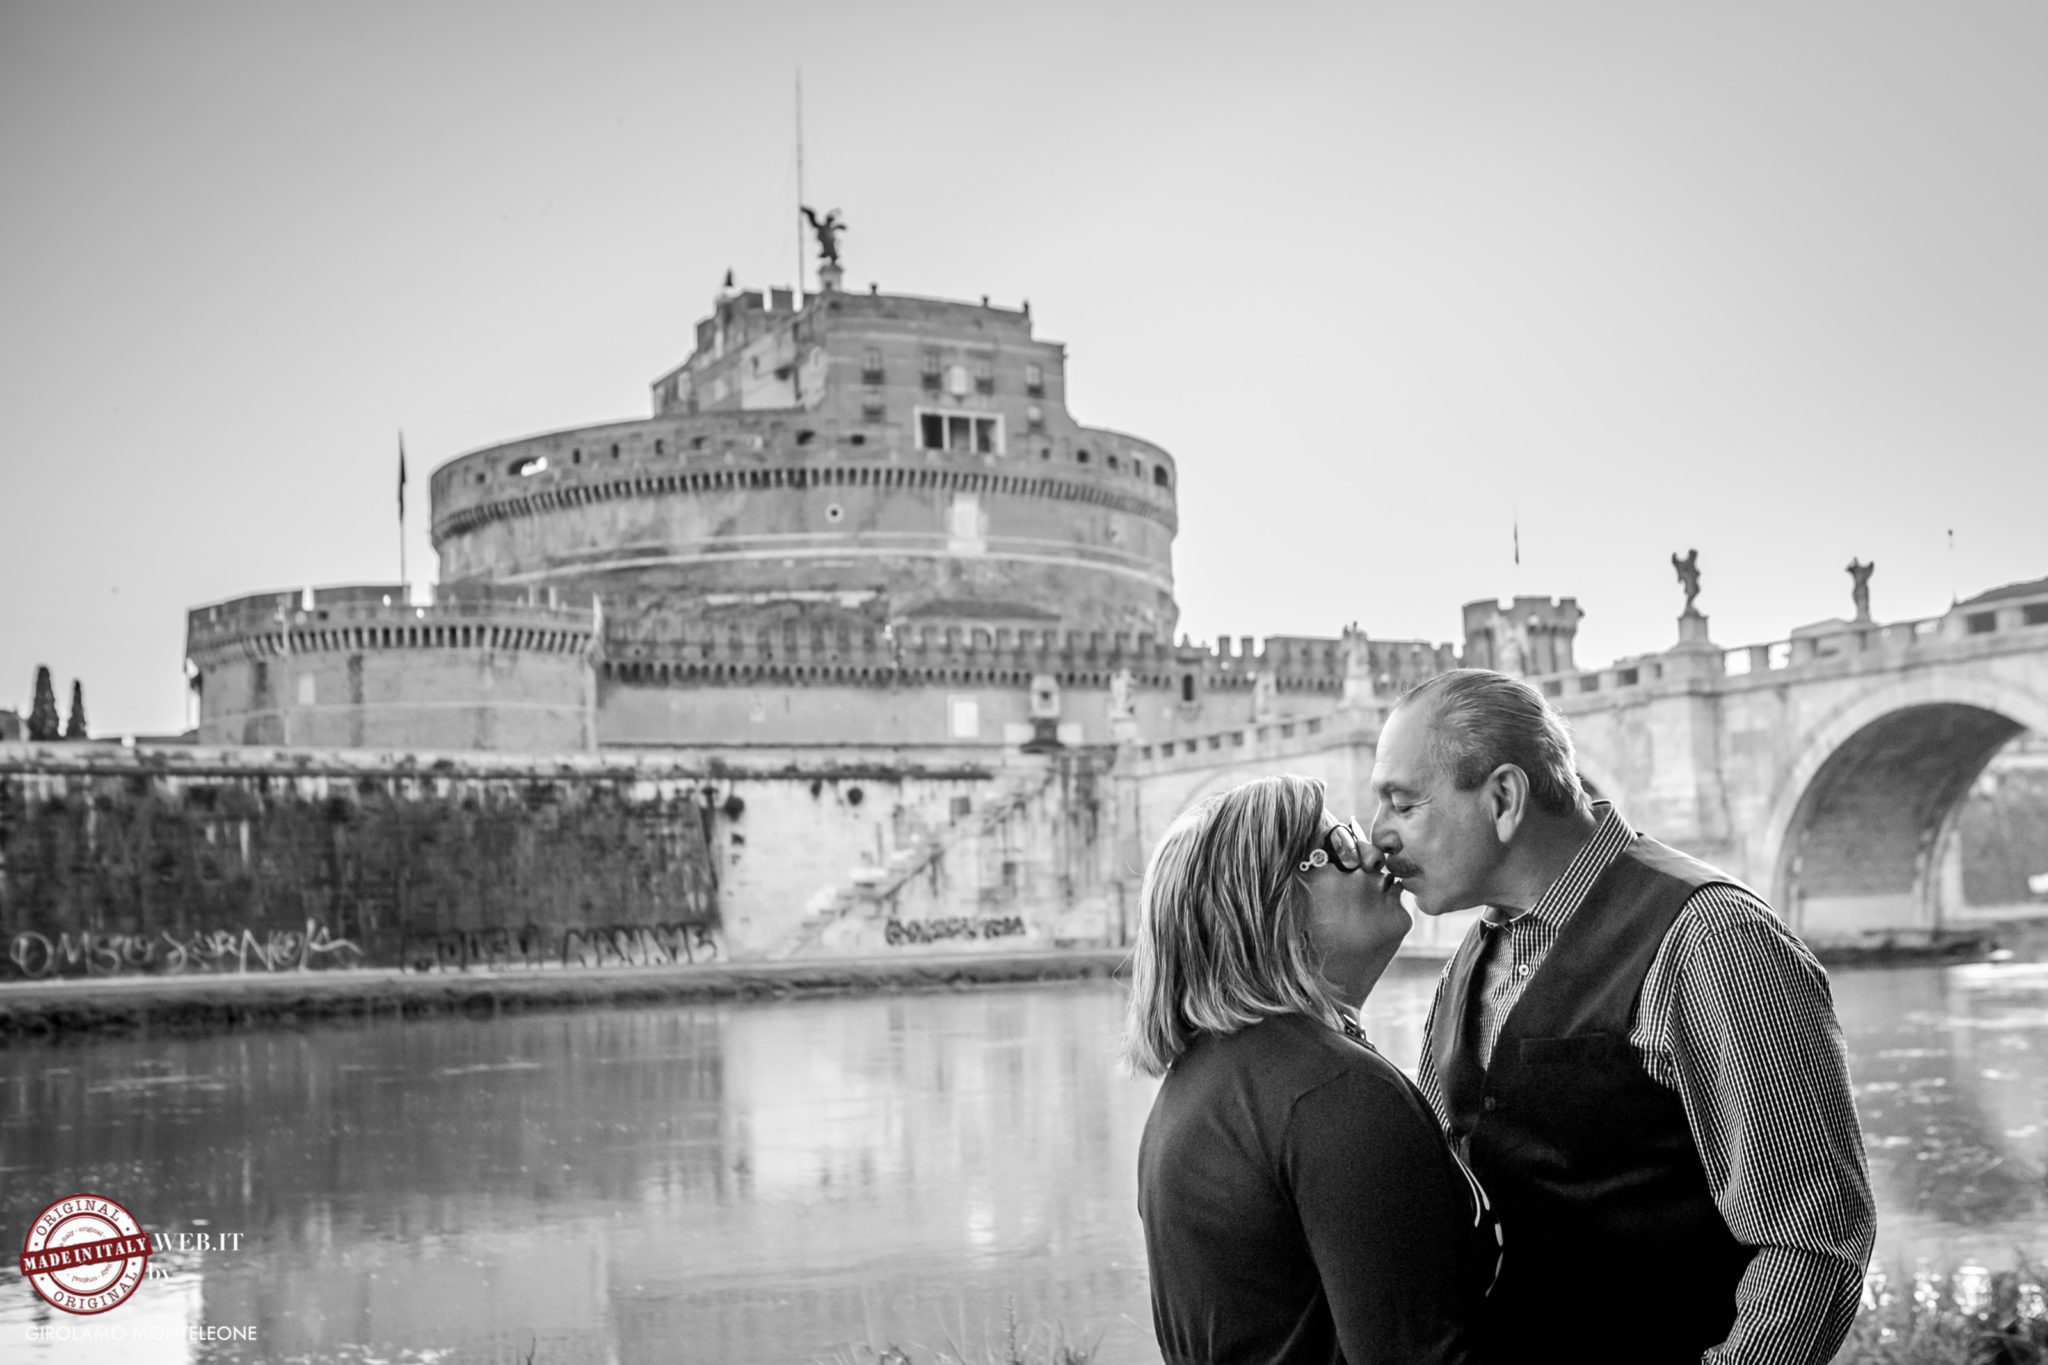 photographer in Rome WWW.MADEINITALYWEB.IT  GIROLAMO MONTELEONE  Yvette & family in Rome 2016giugno060614492753